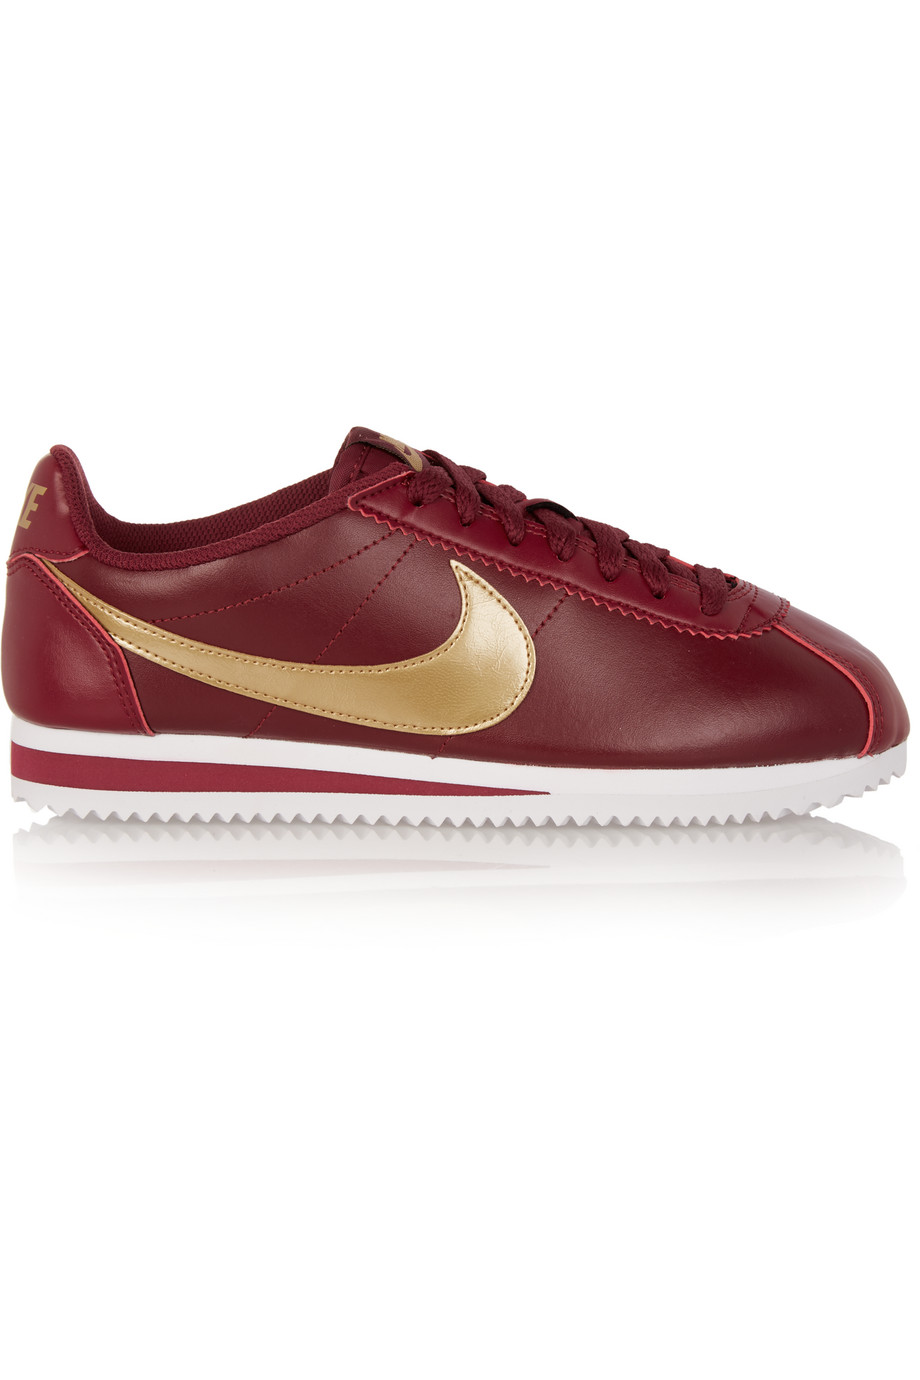 Nike Classic Cortez Leather Sneakers, Red/Burgundy, Women's, Size: 5